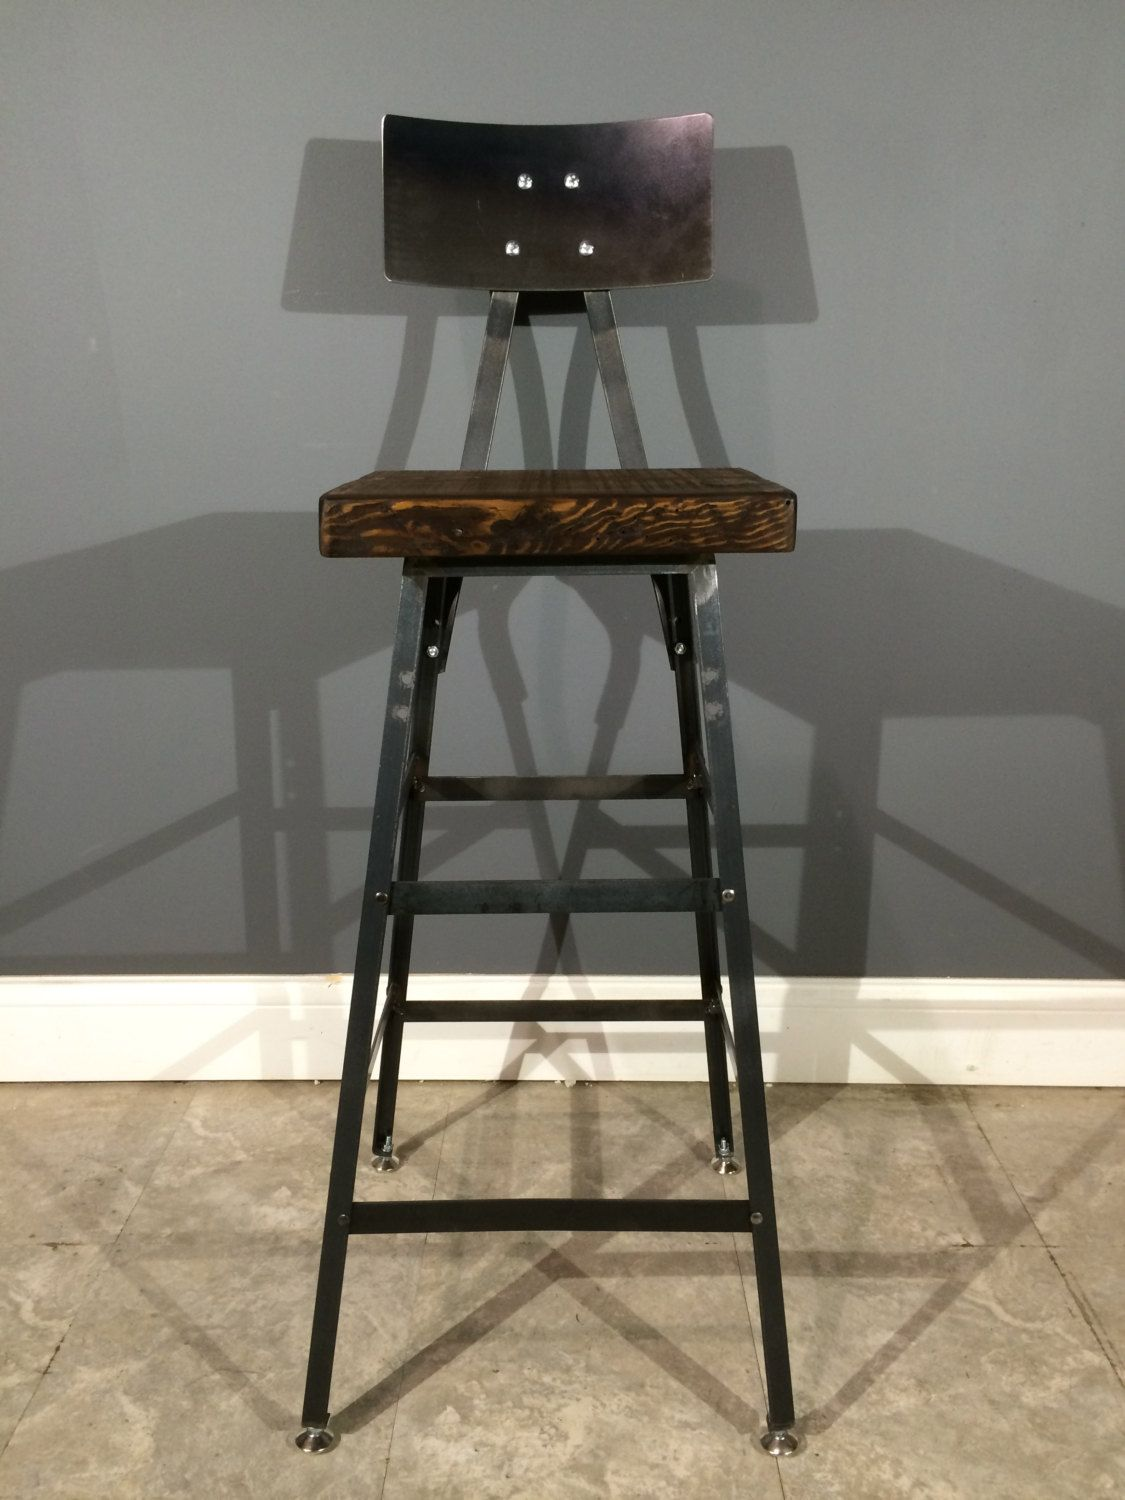 Industrial Urban Bar Stool W/ Back   Rustic Chair Made From Reclaimed Barn  Wood   Antique Oak Finish   Fast Shipping!